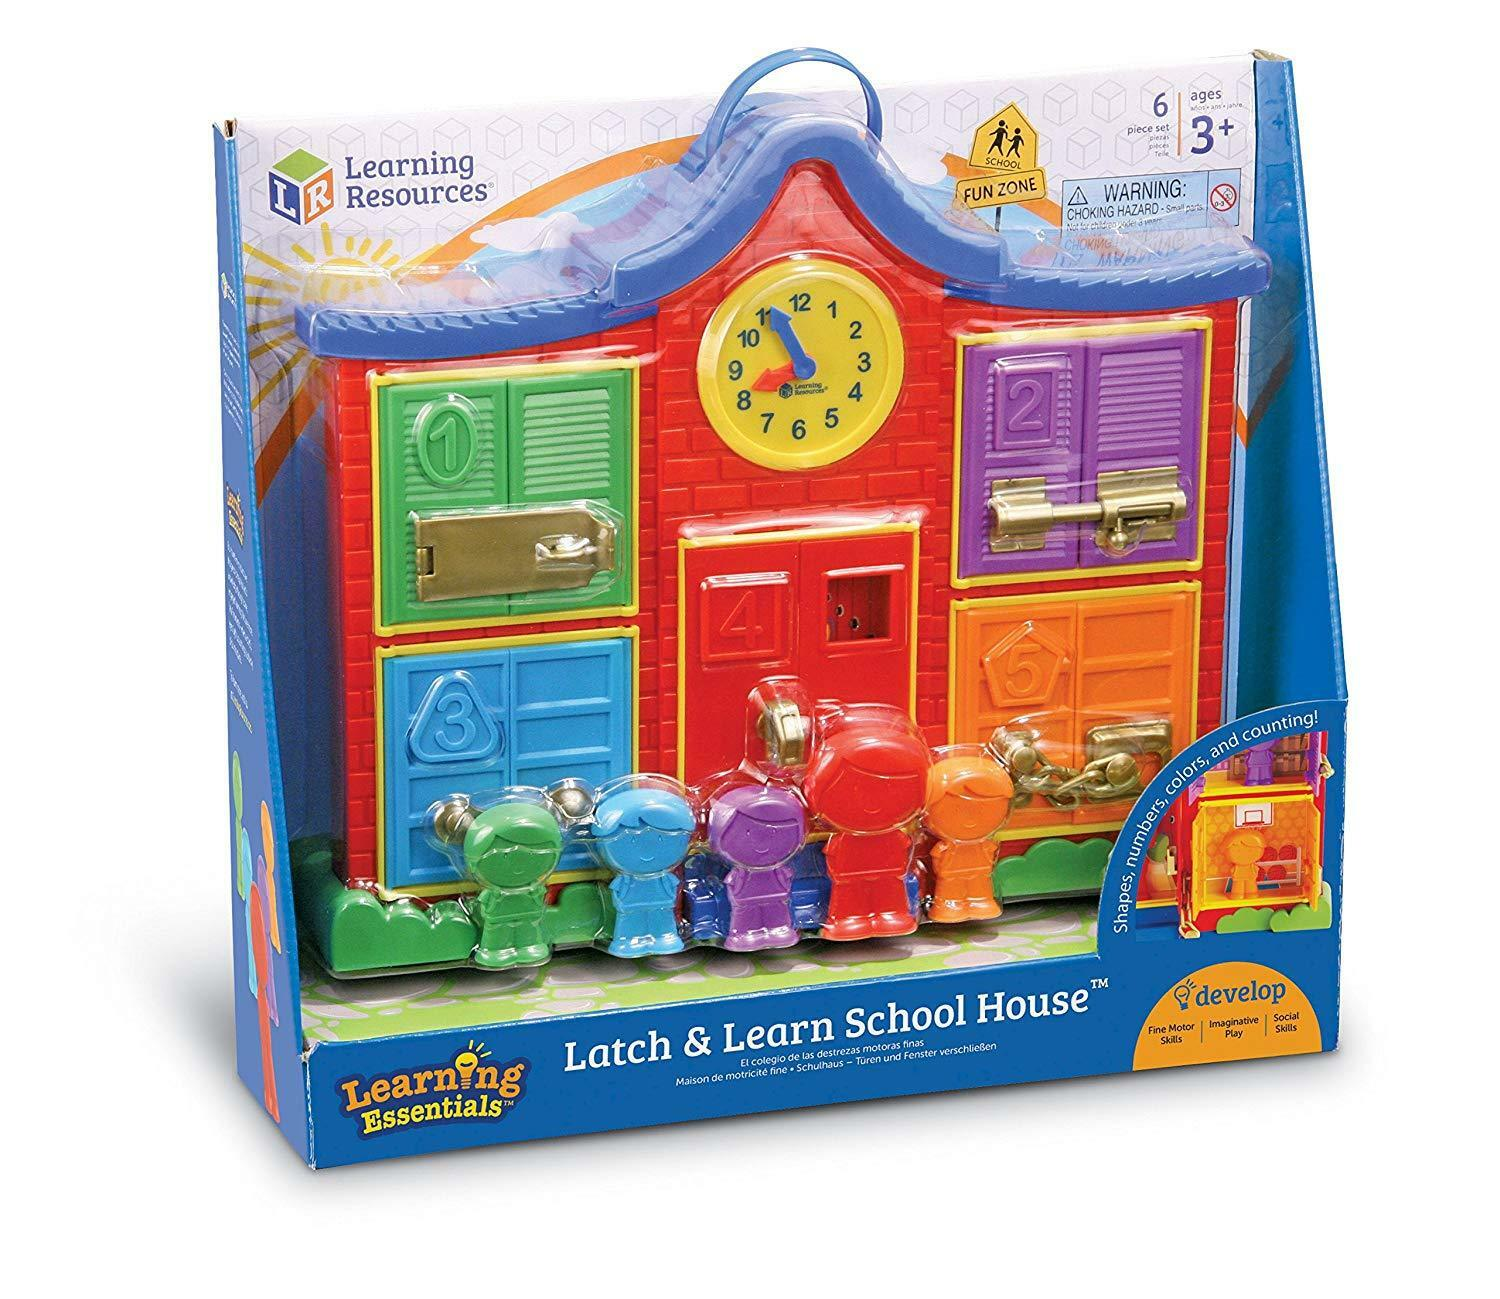 Learning Resources Latch & Learn School House (Ages 3+) BRAND NEW